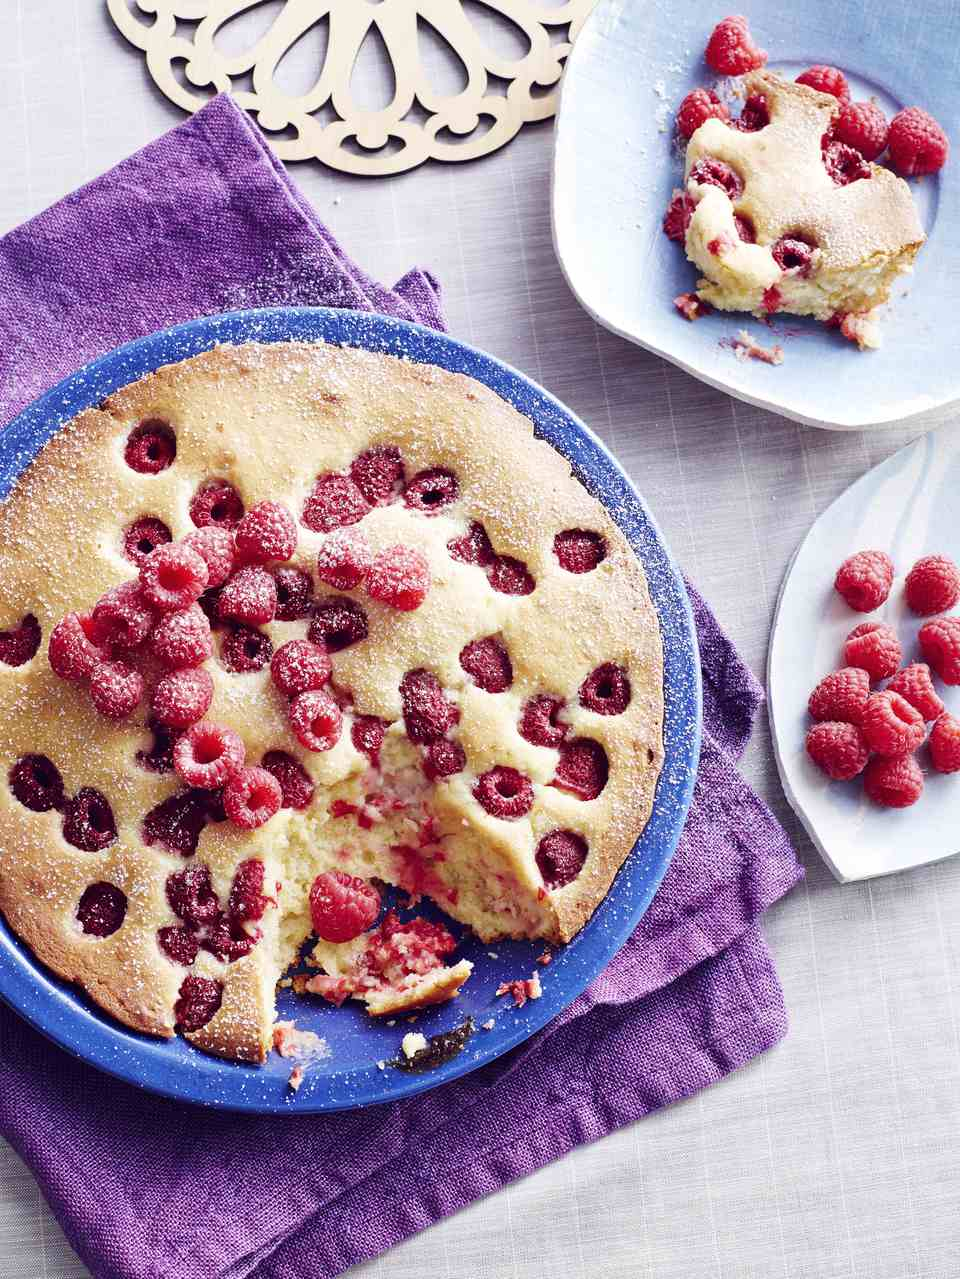 Still life of Czech bublanina cake with raspberries